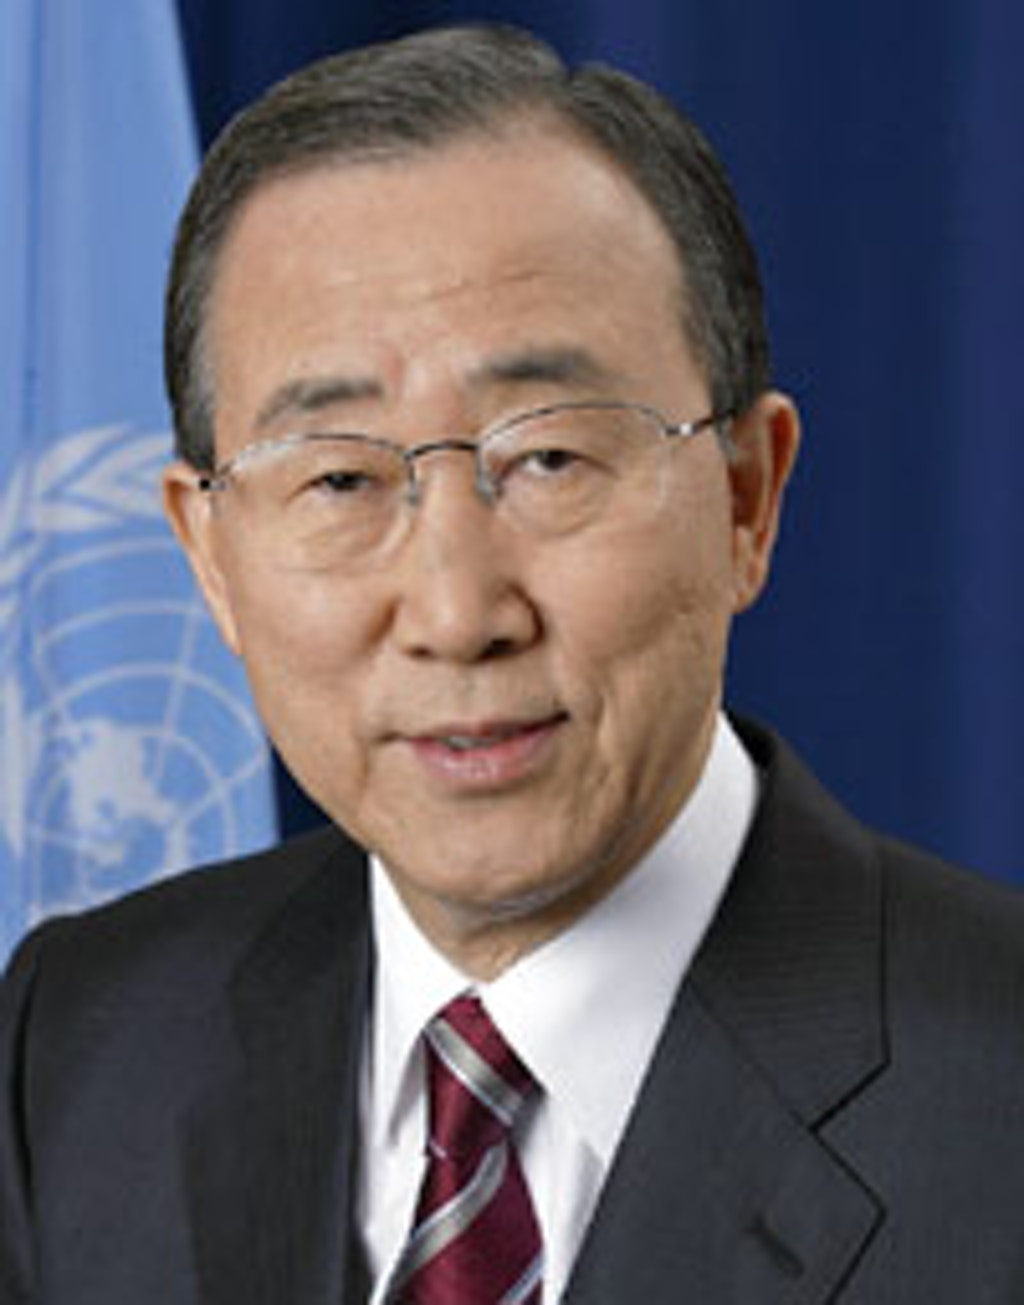 NEW VOICES: UN Secretary General Urges Members to Abolish the Death Penalty